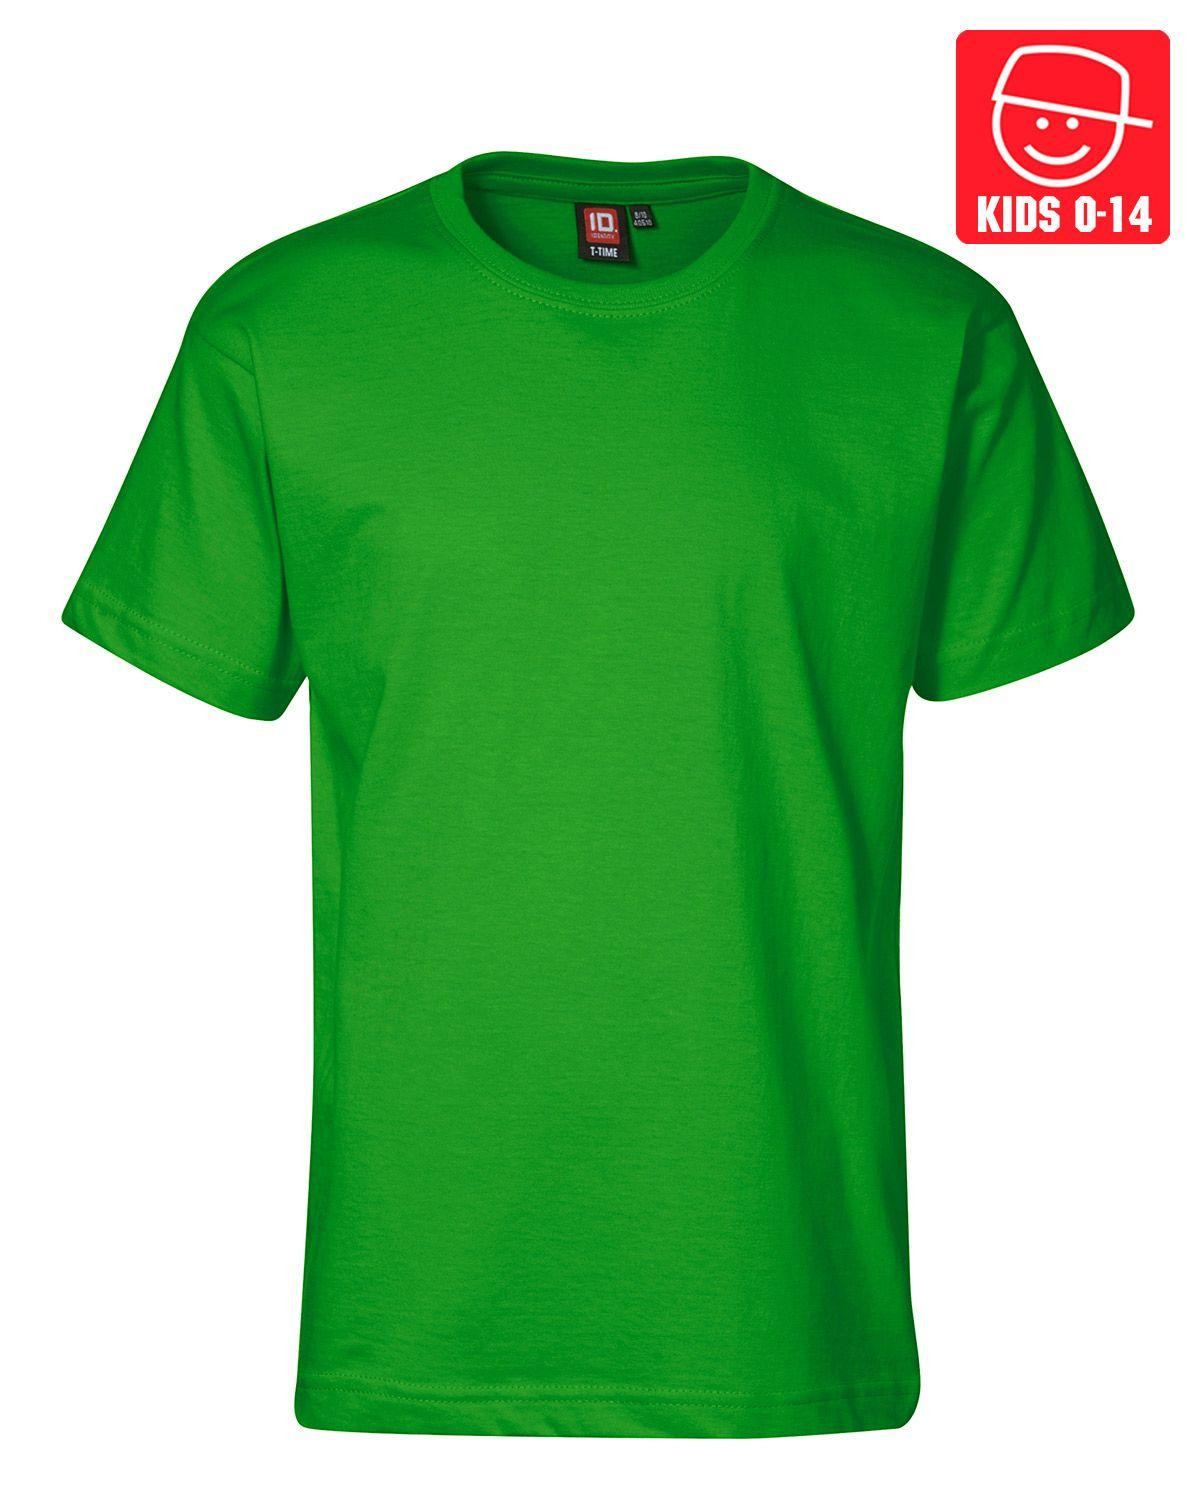 Image of   ID T-TIME T-shirt (Grøn, 158)